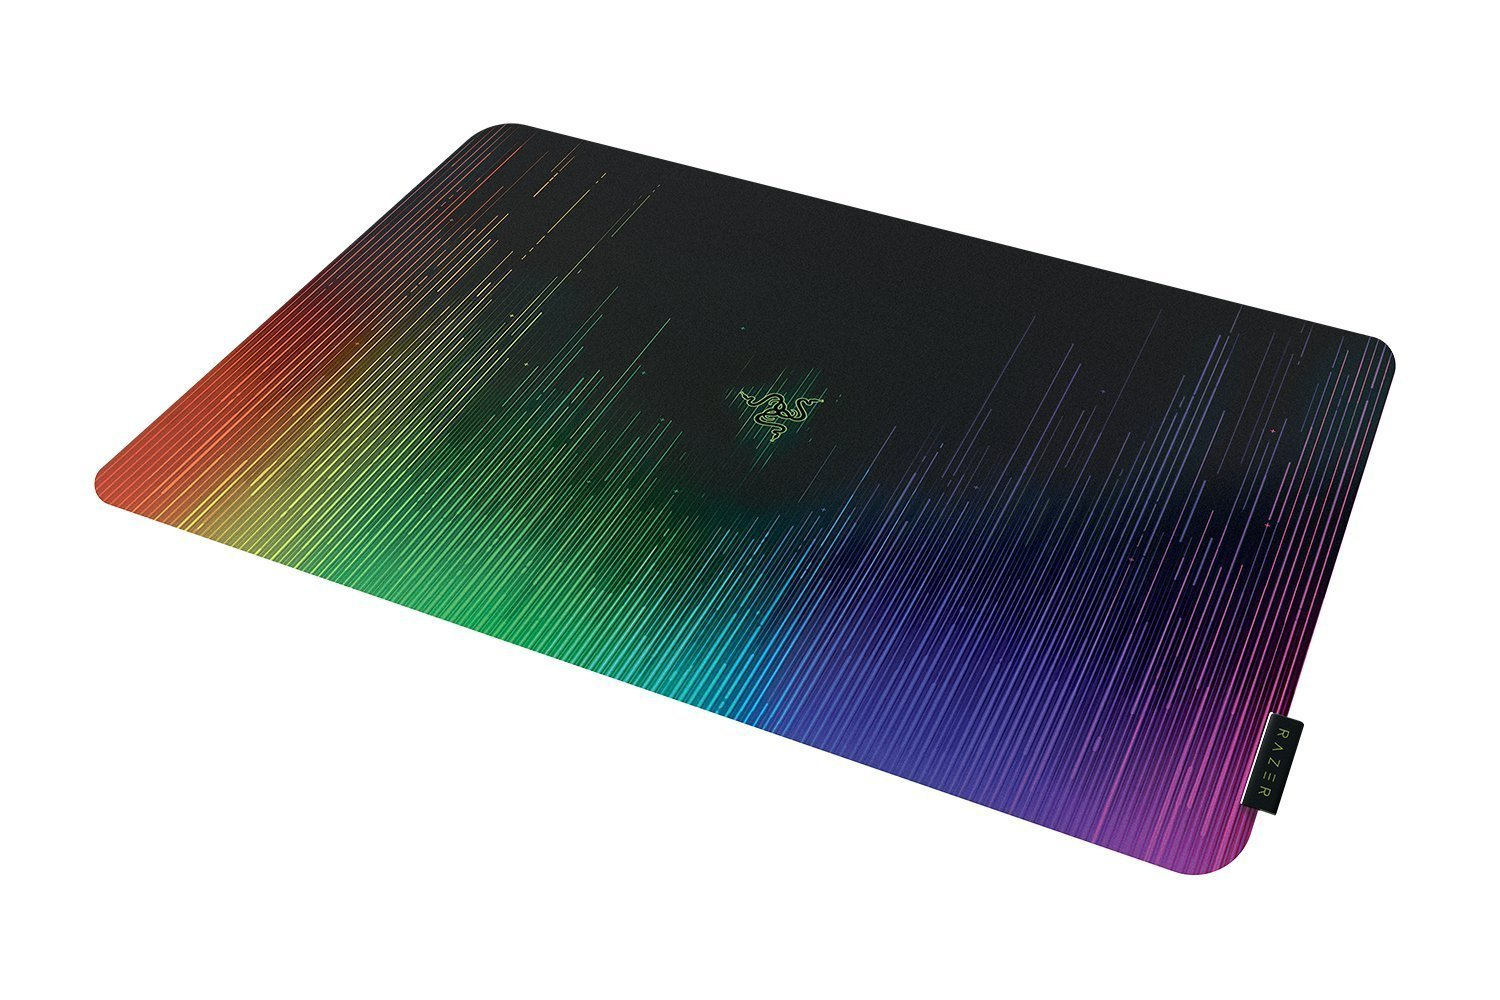 Razer Sphex V2: Ultra-Thin Gaming Mouse Mat